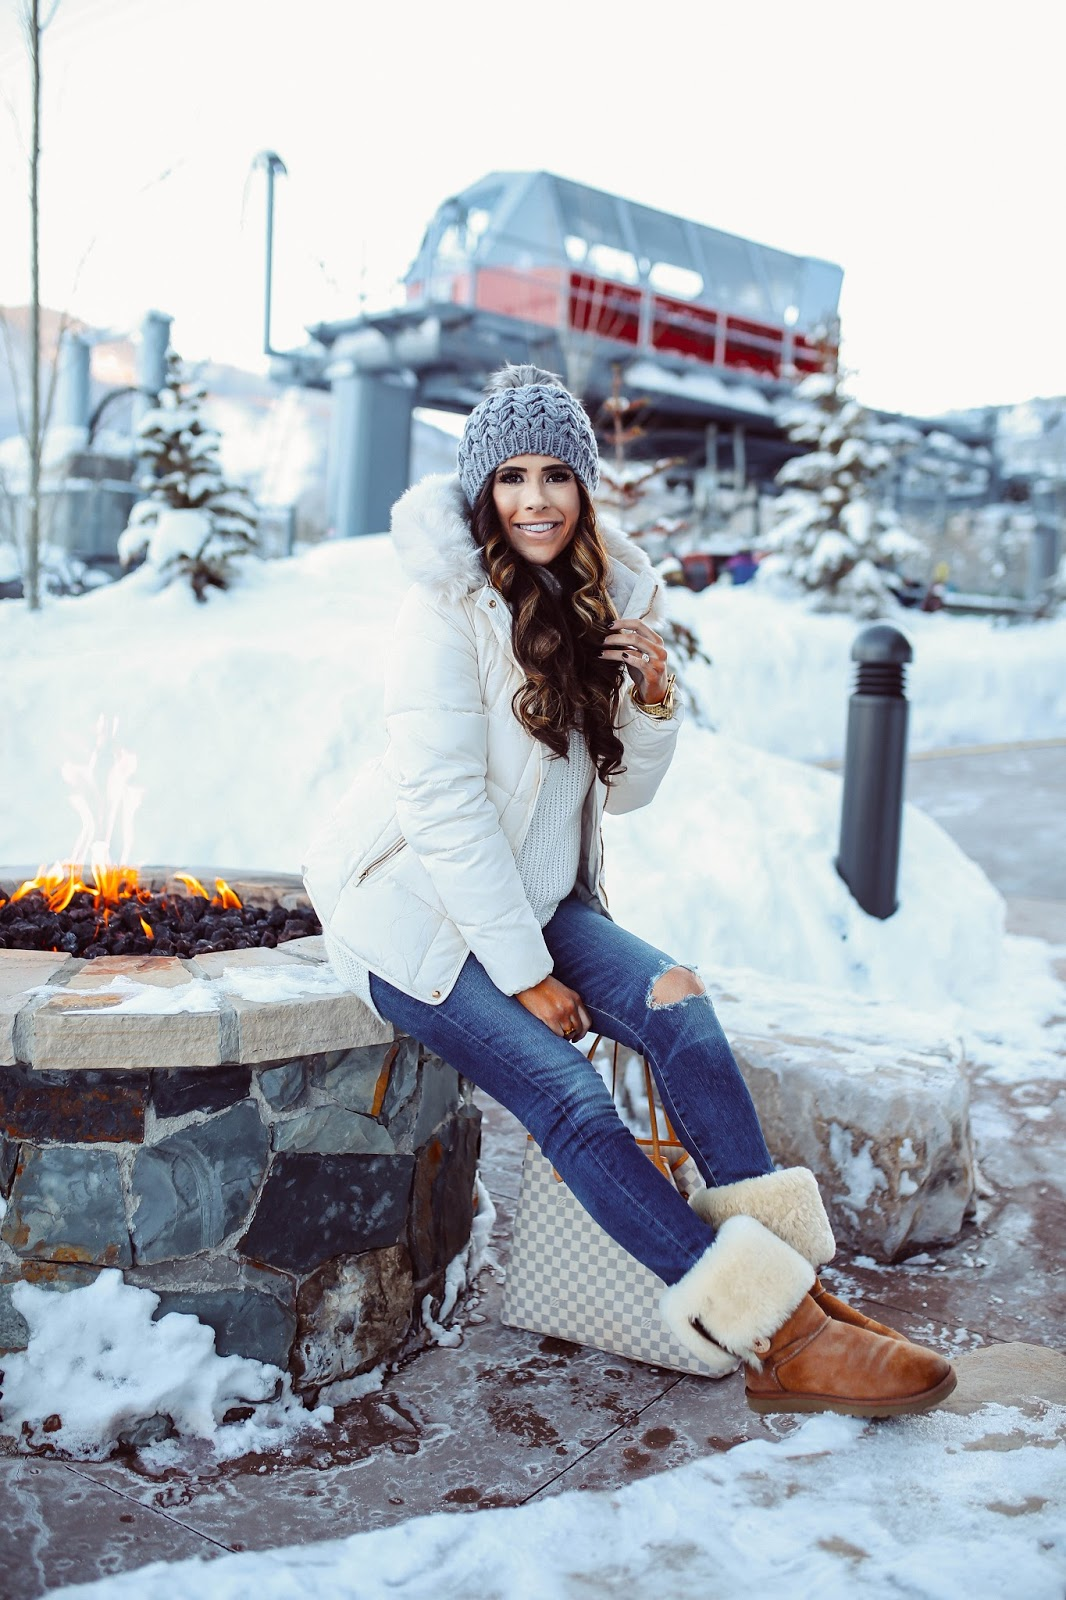 My Winter 2017 Capsule Wardrobe: Snuggled Up Fireside (My FAVE Boots For Winter Time